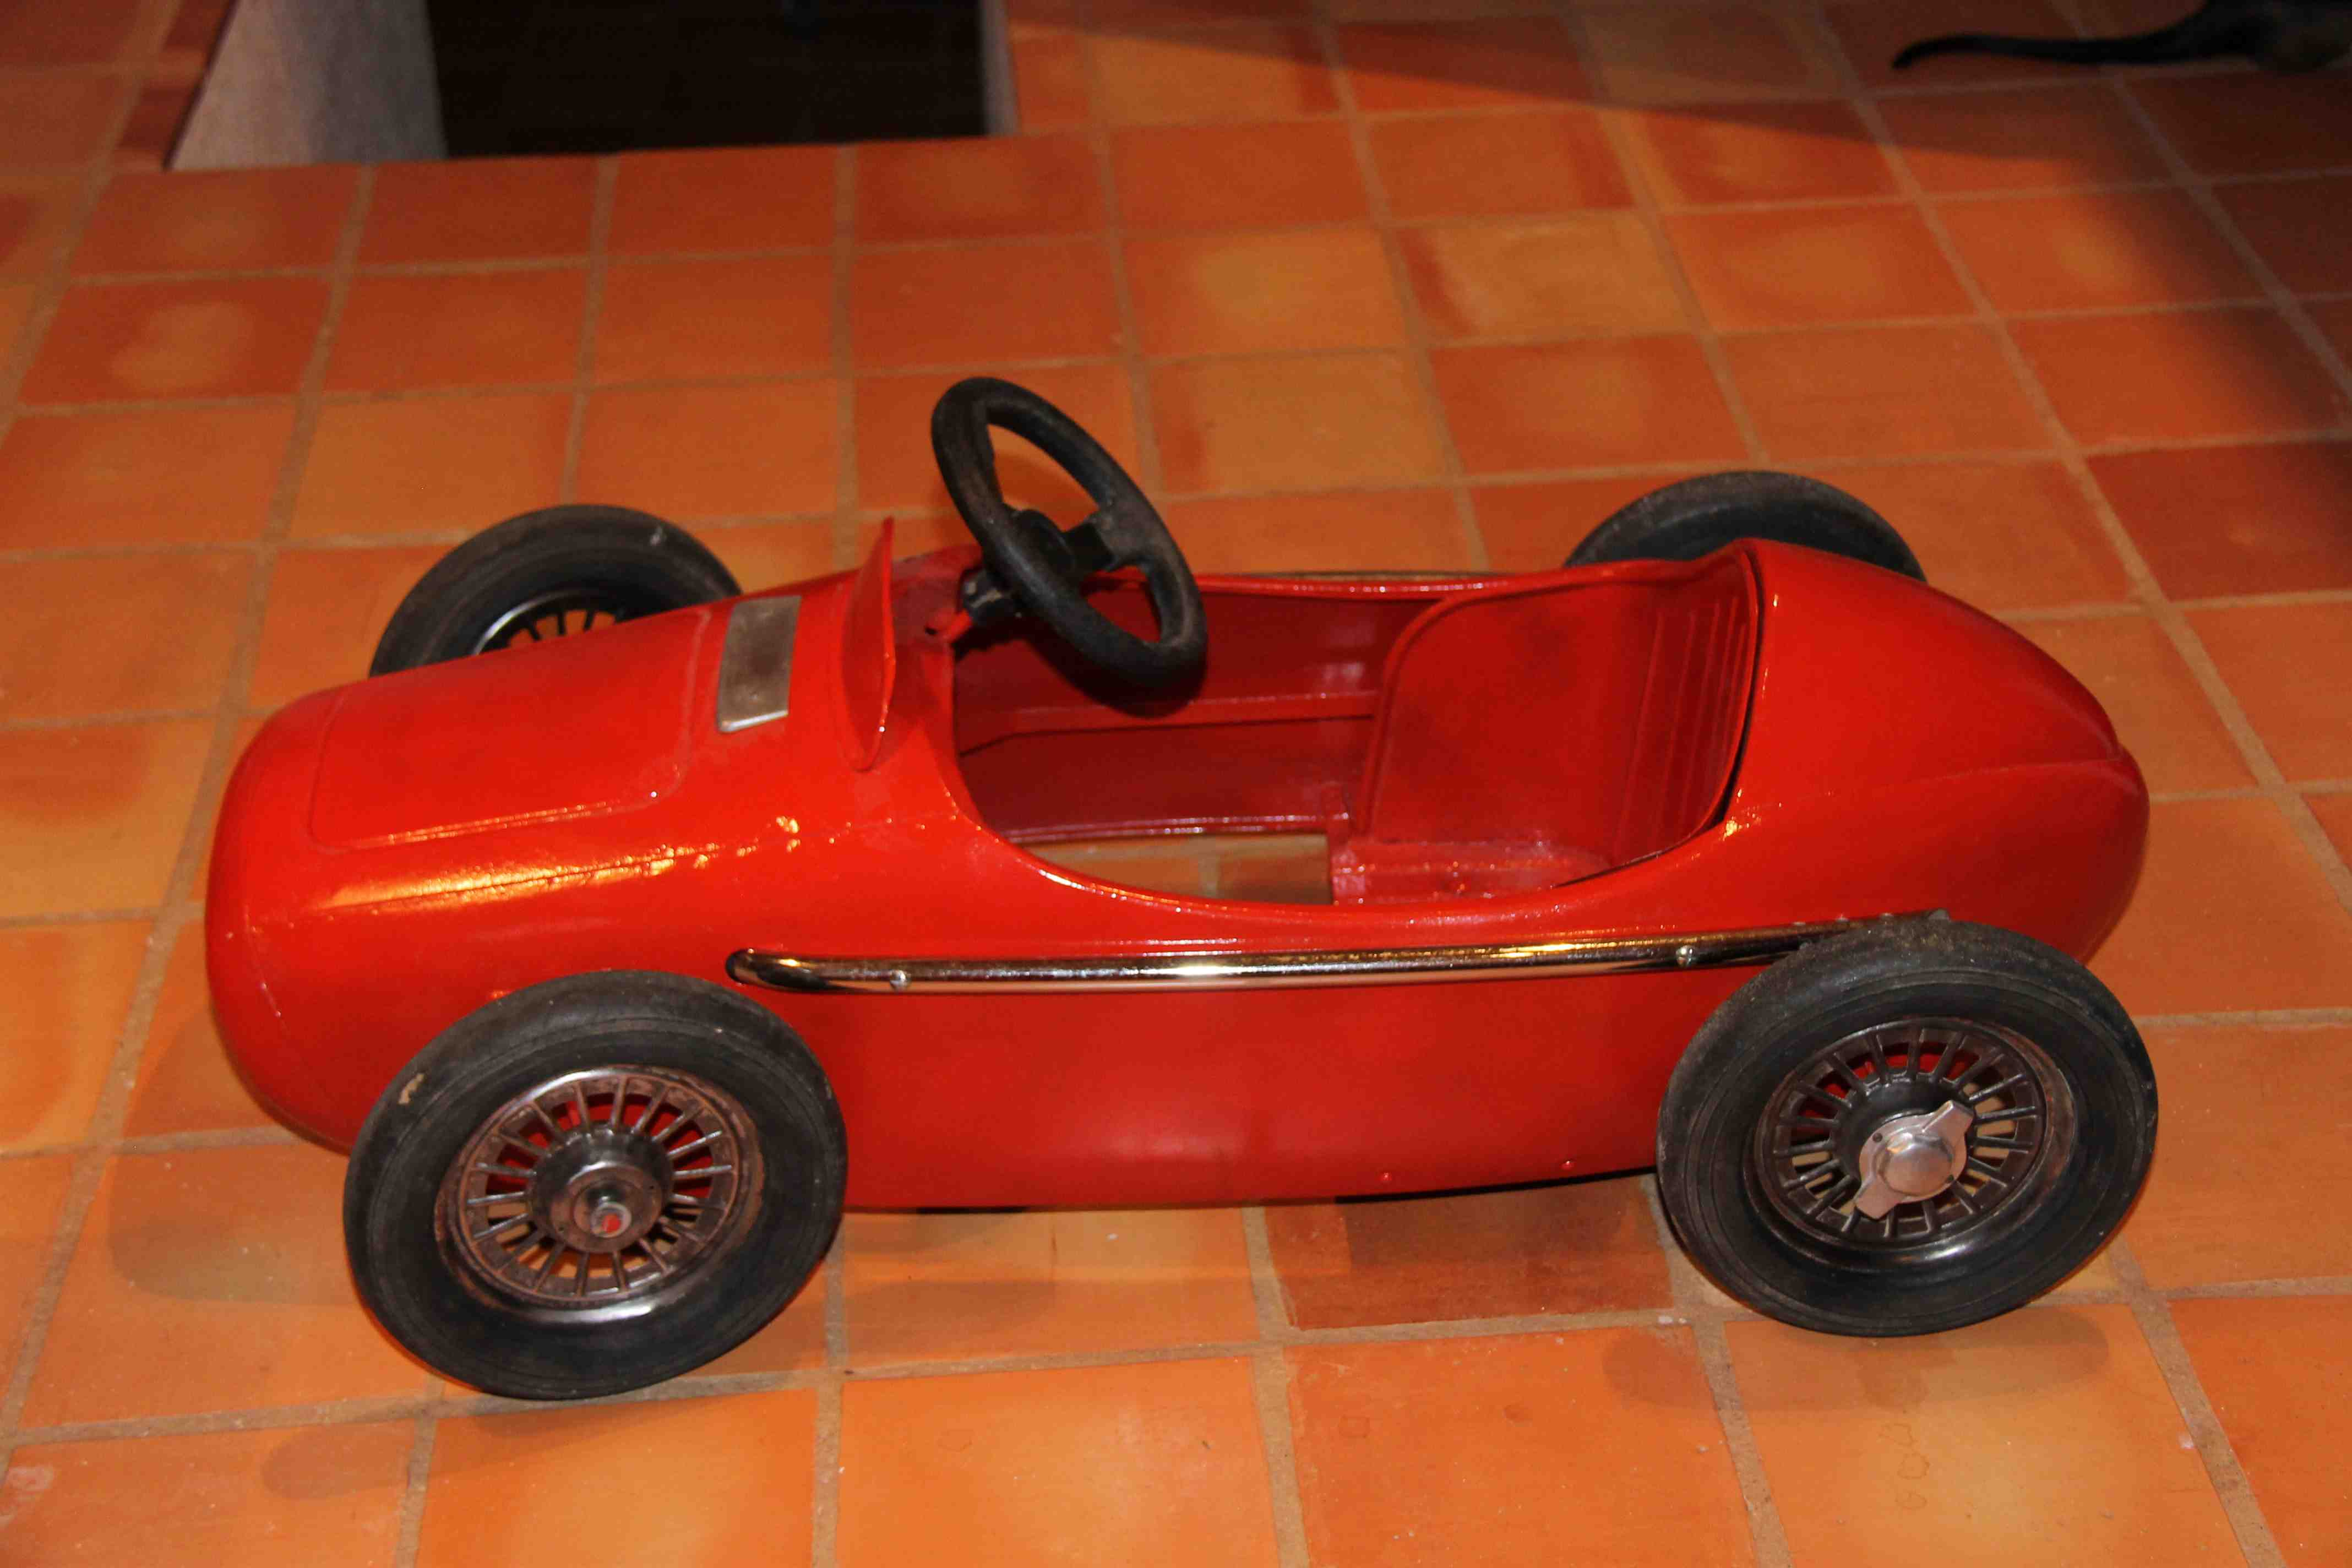 THE RED RACING CAR 001.jpg